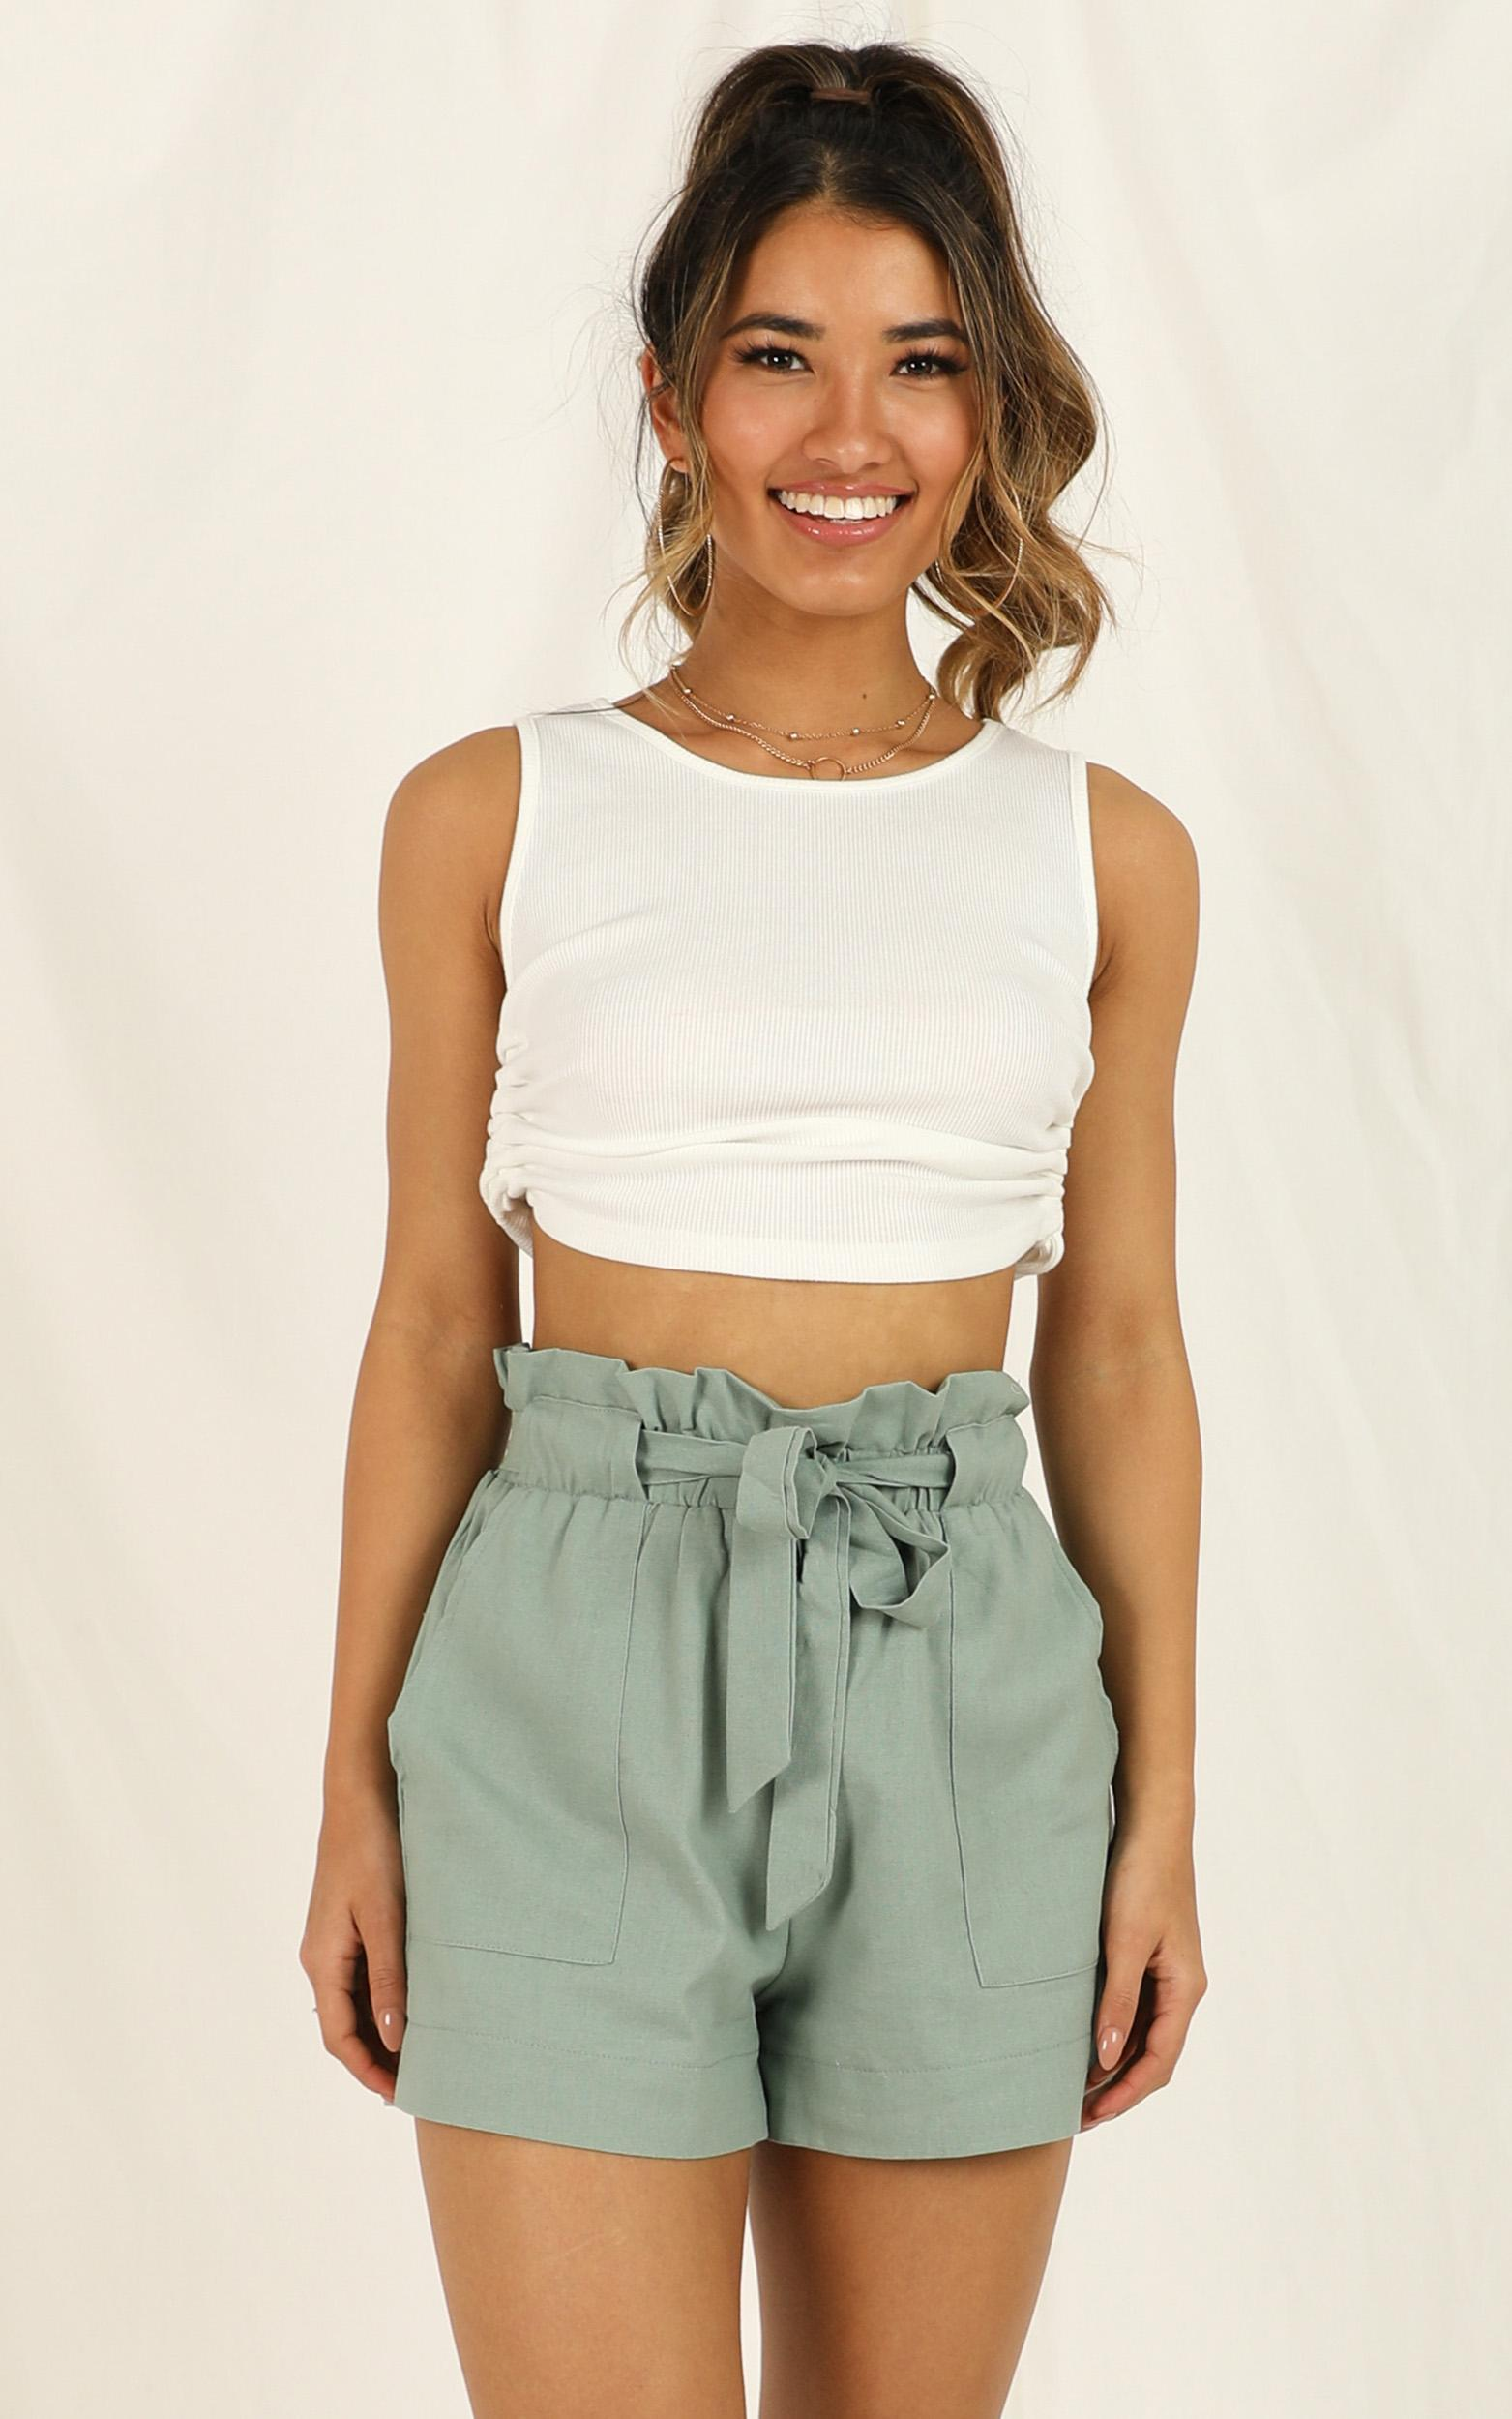 All Rounder Shorts in sage linen look - 6 (XS), Sage, hi-res image number null